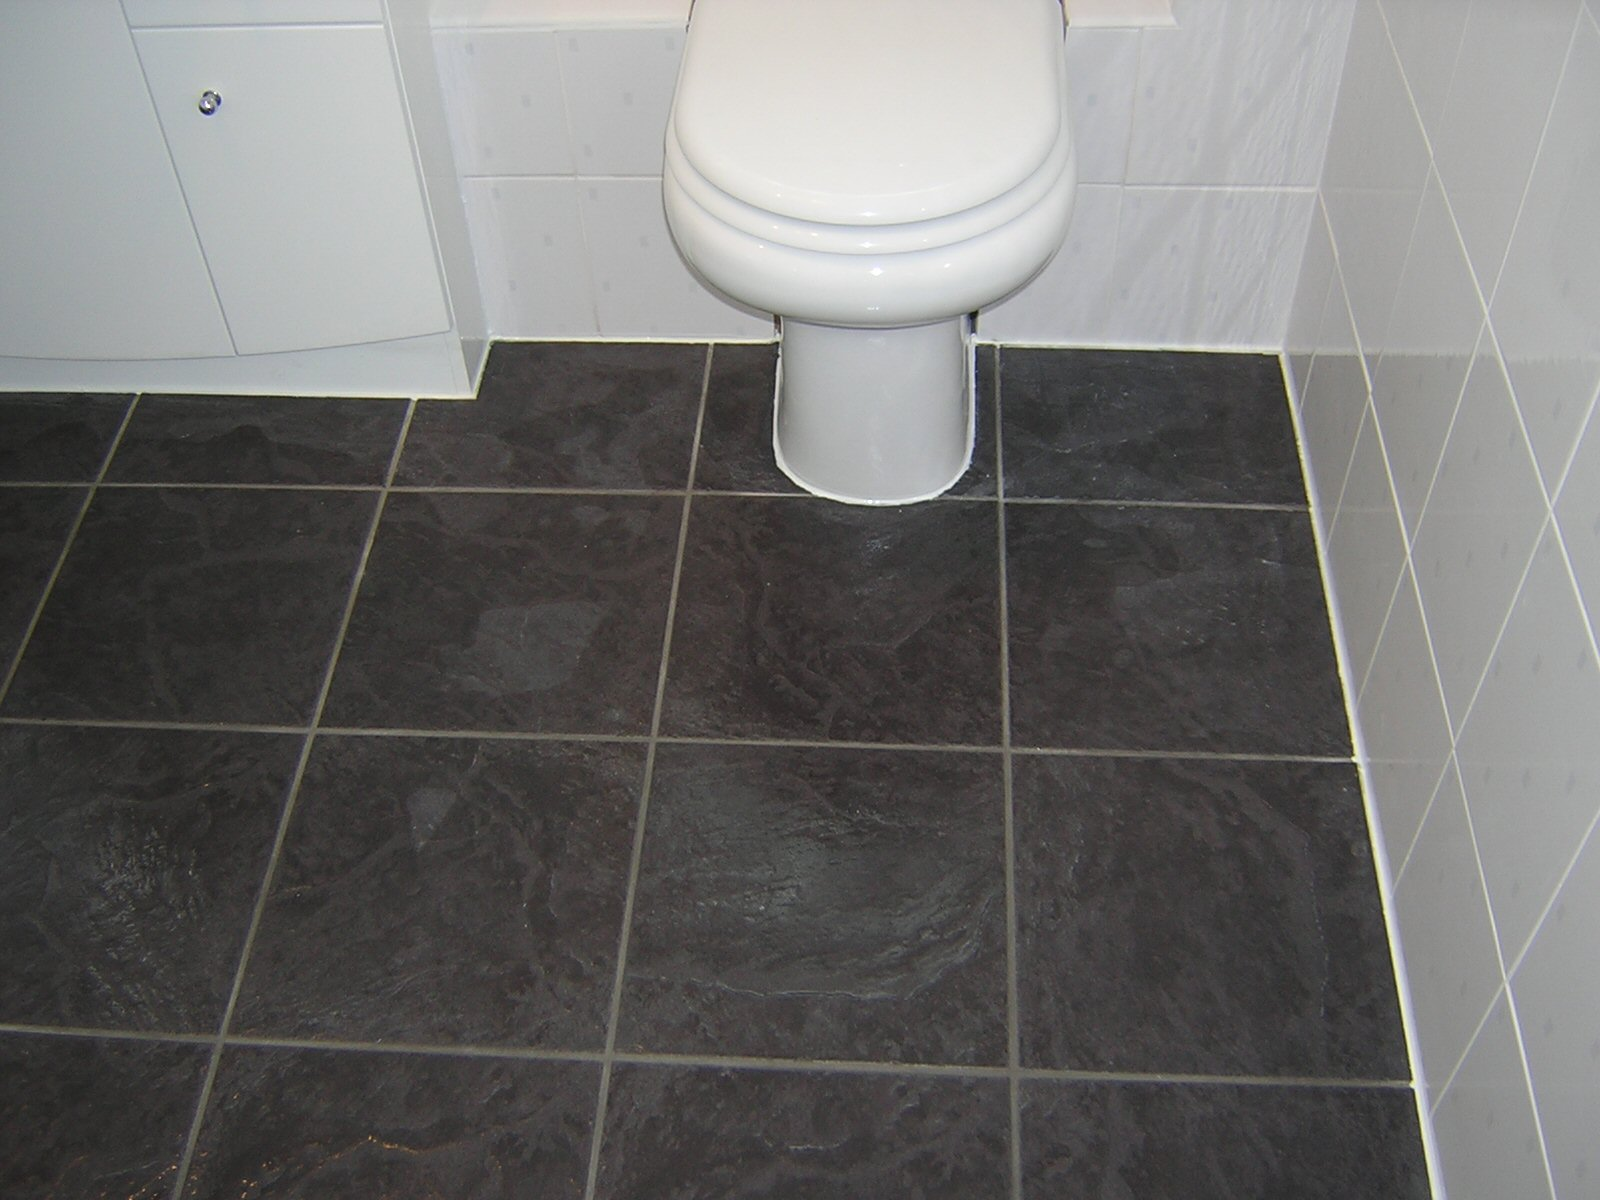 Vinyl Bathroom Floors 30 Amazing Ideas And Pictures Of The Best Vinyl Tile For Bathroom